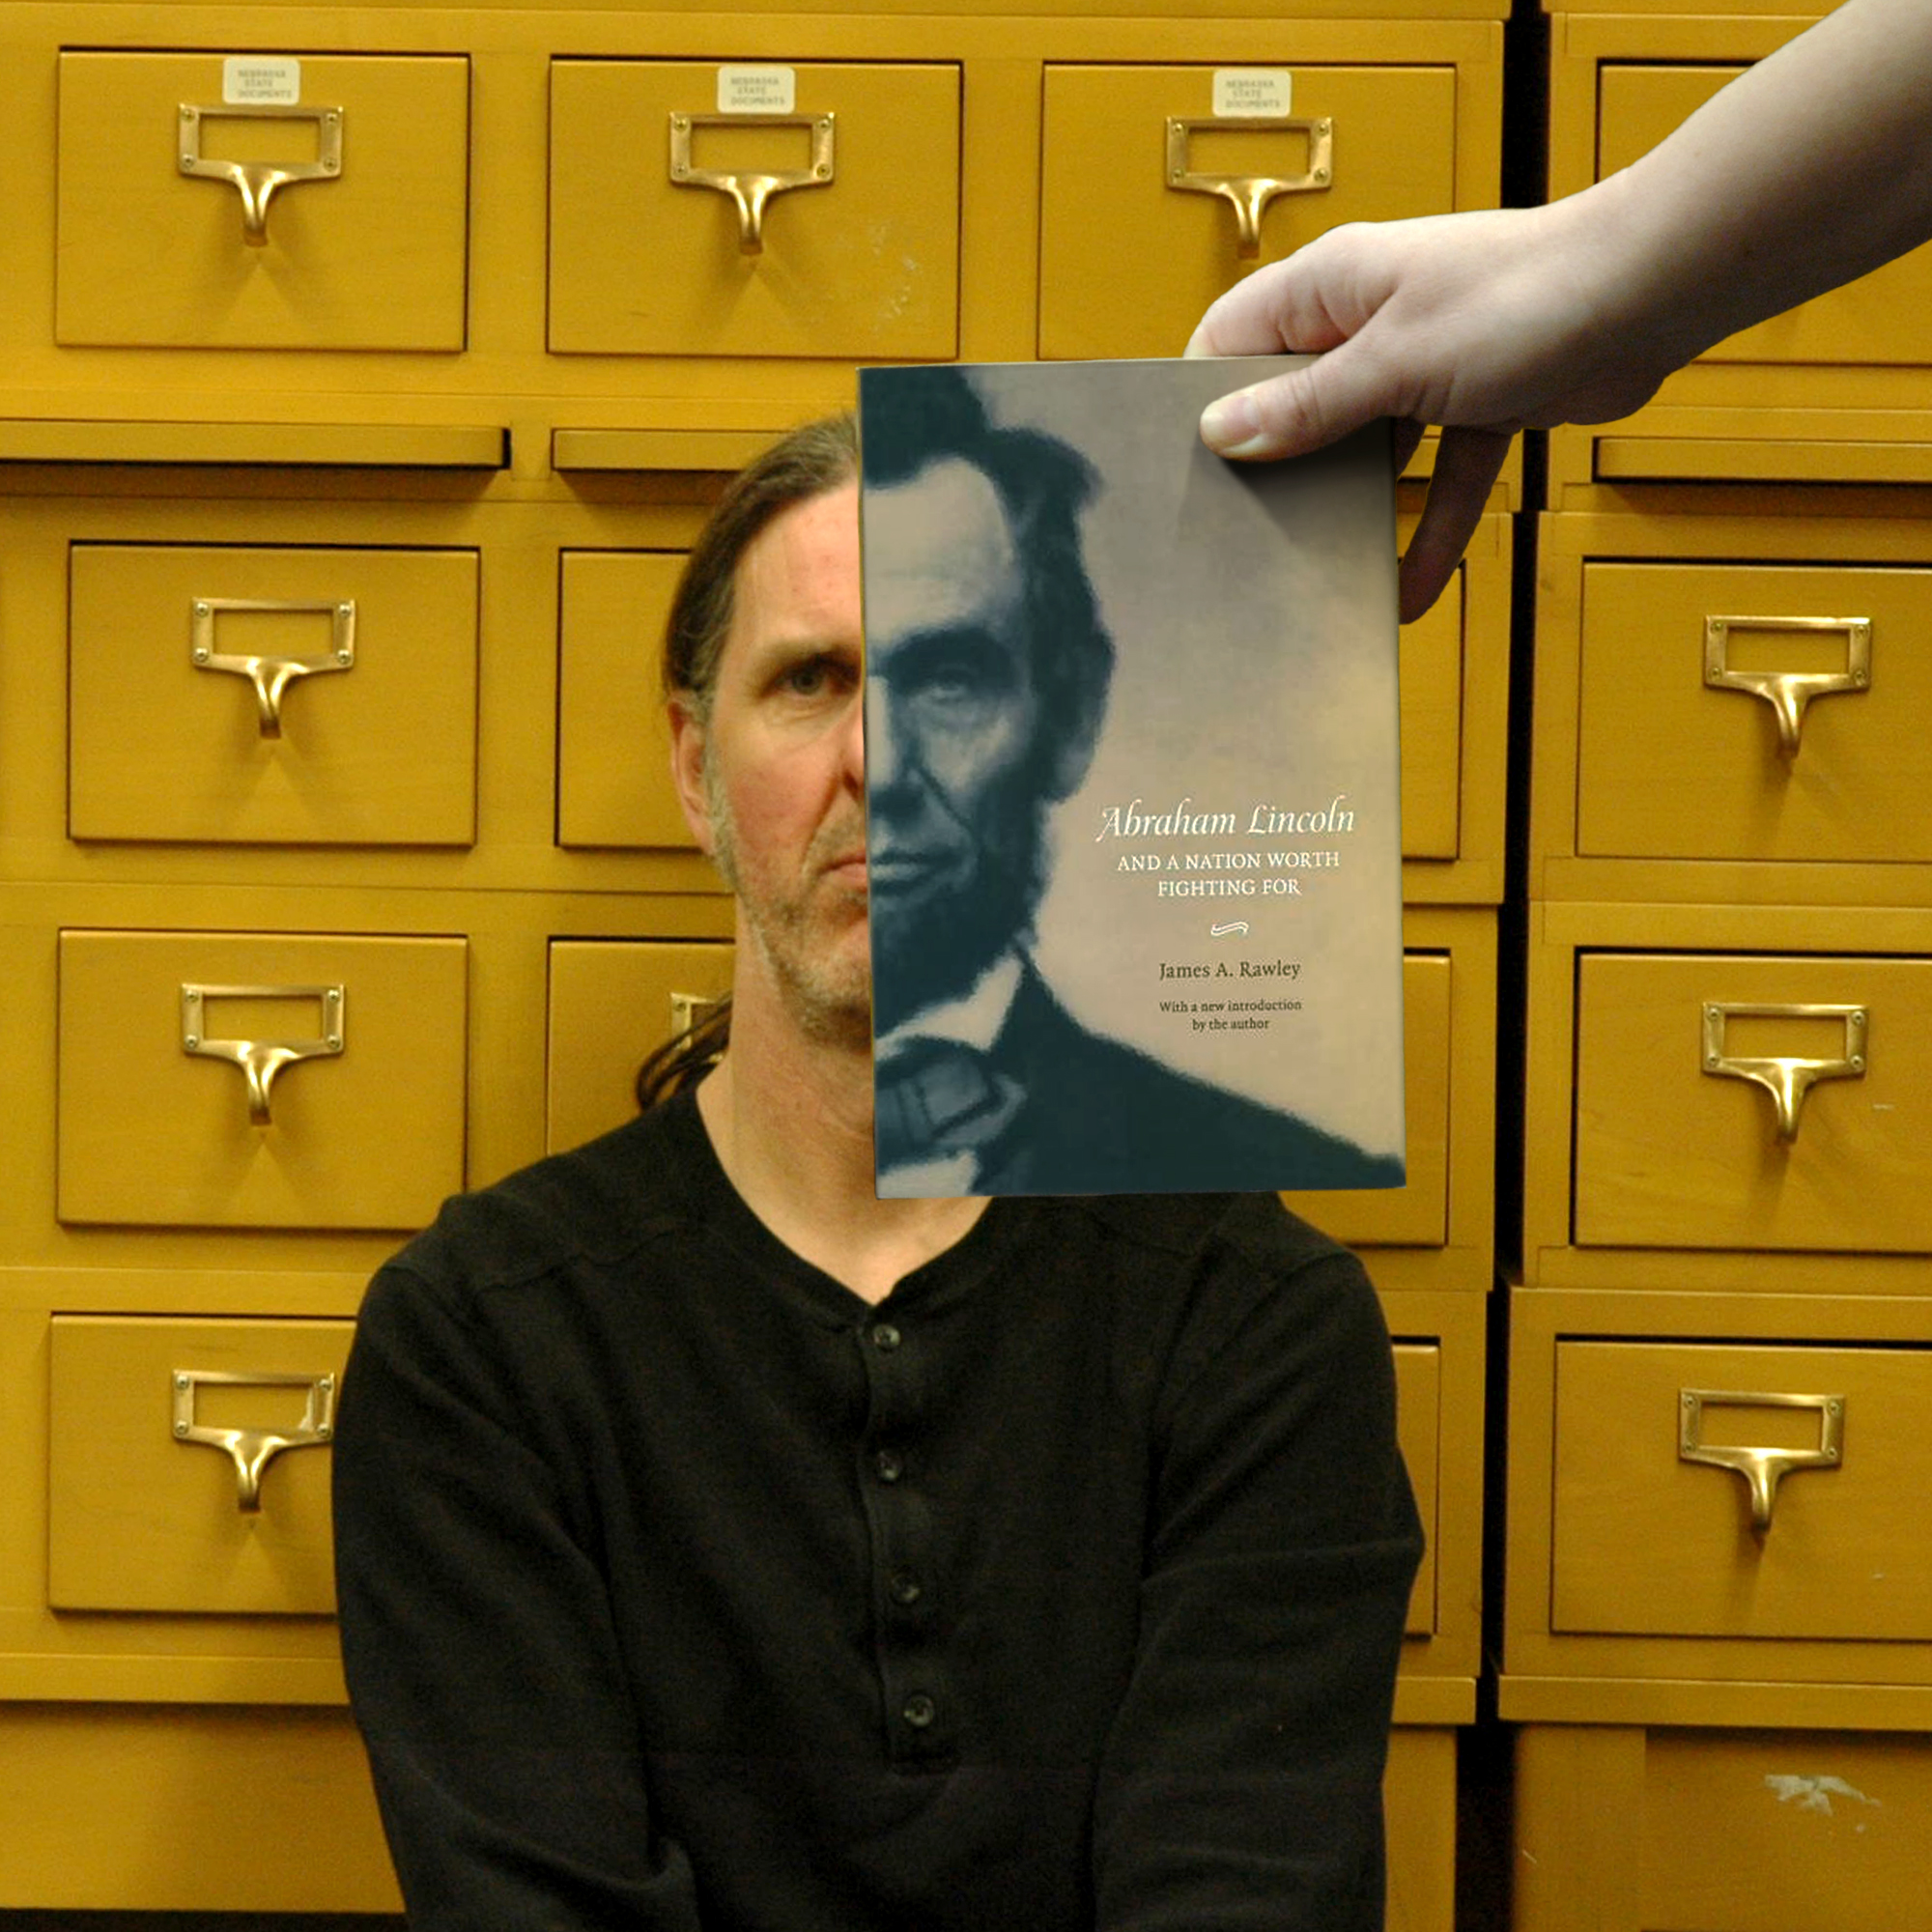 """Abraham Lincoln and a Nation Worth Fighting For"" BookFace Image"